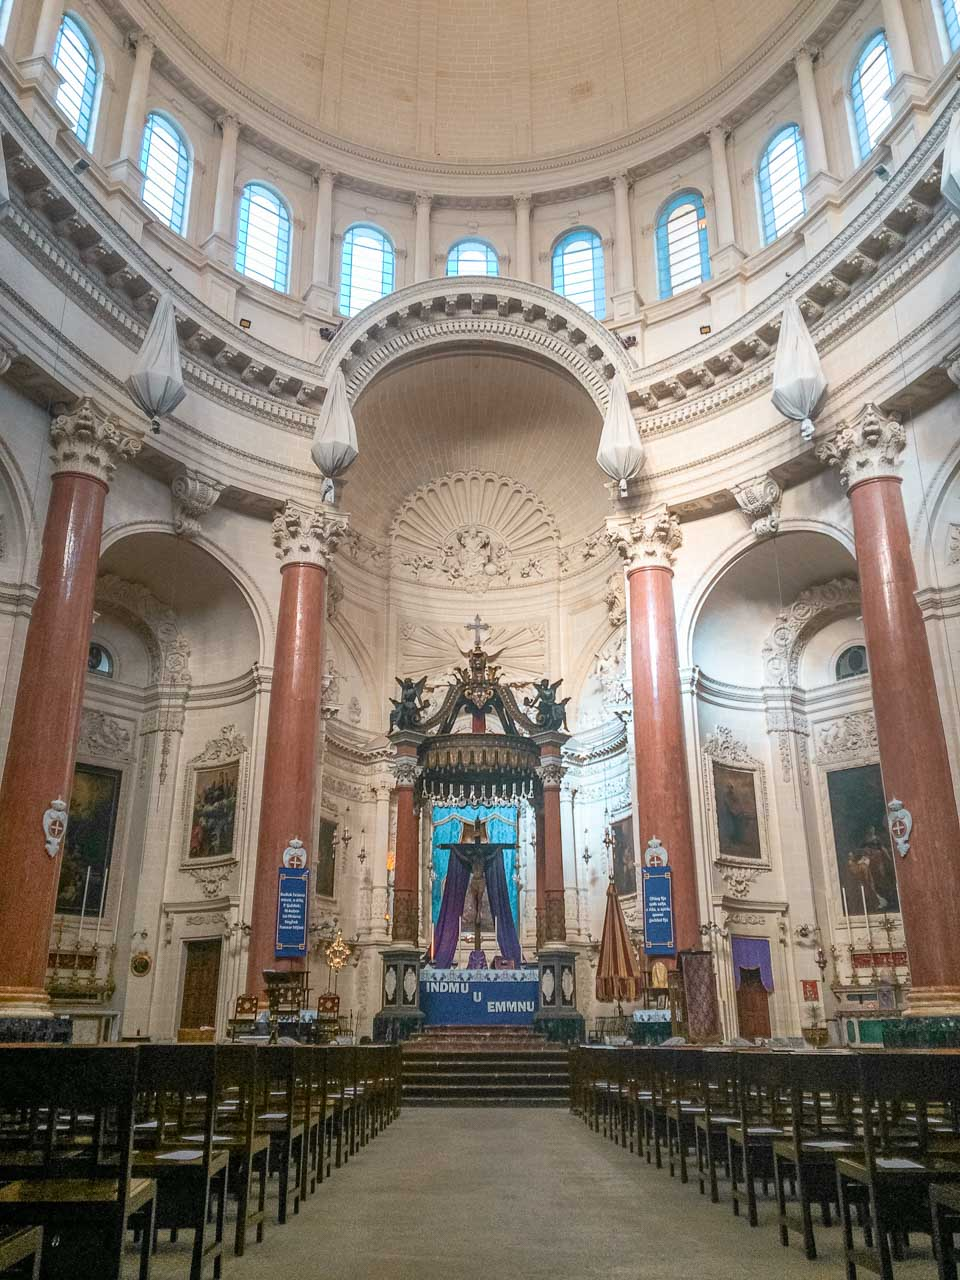 The inside of the Basilica of Our Lady of Mount Carmel in Valletta, Malta